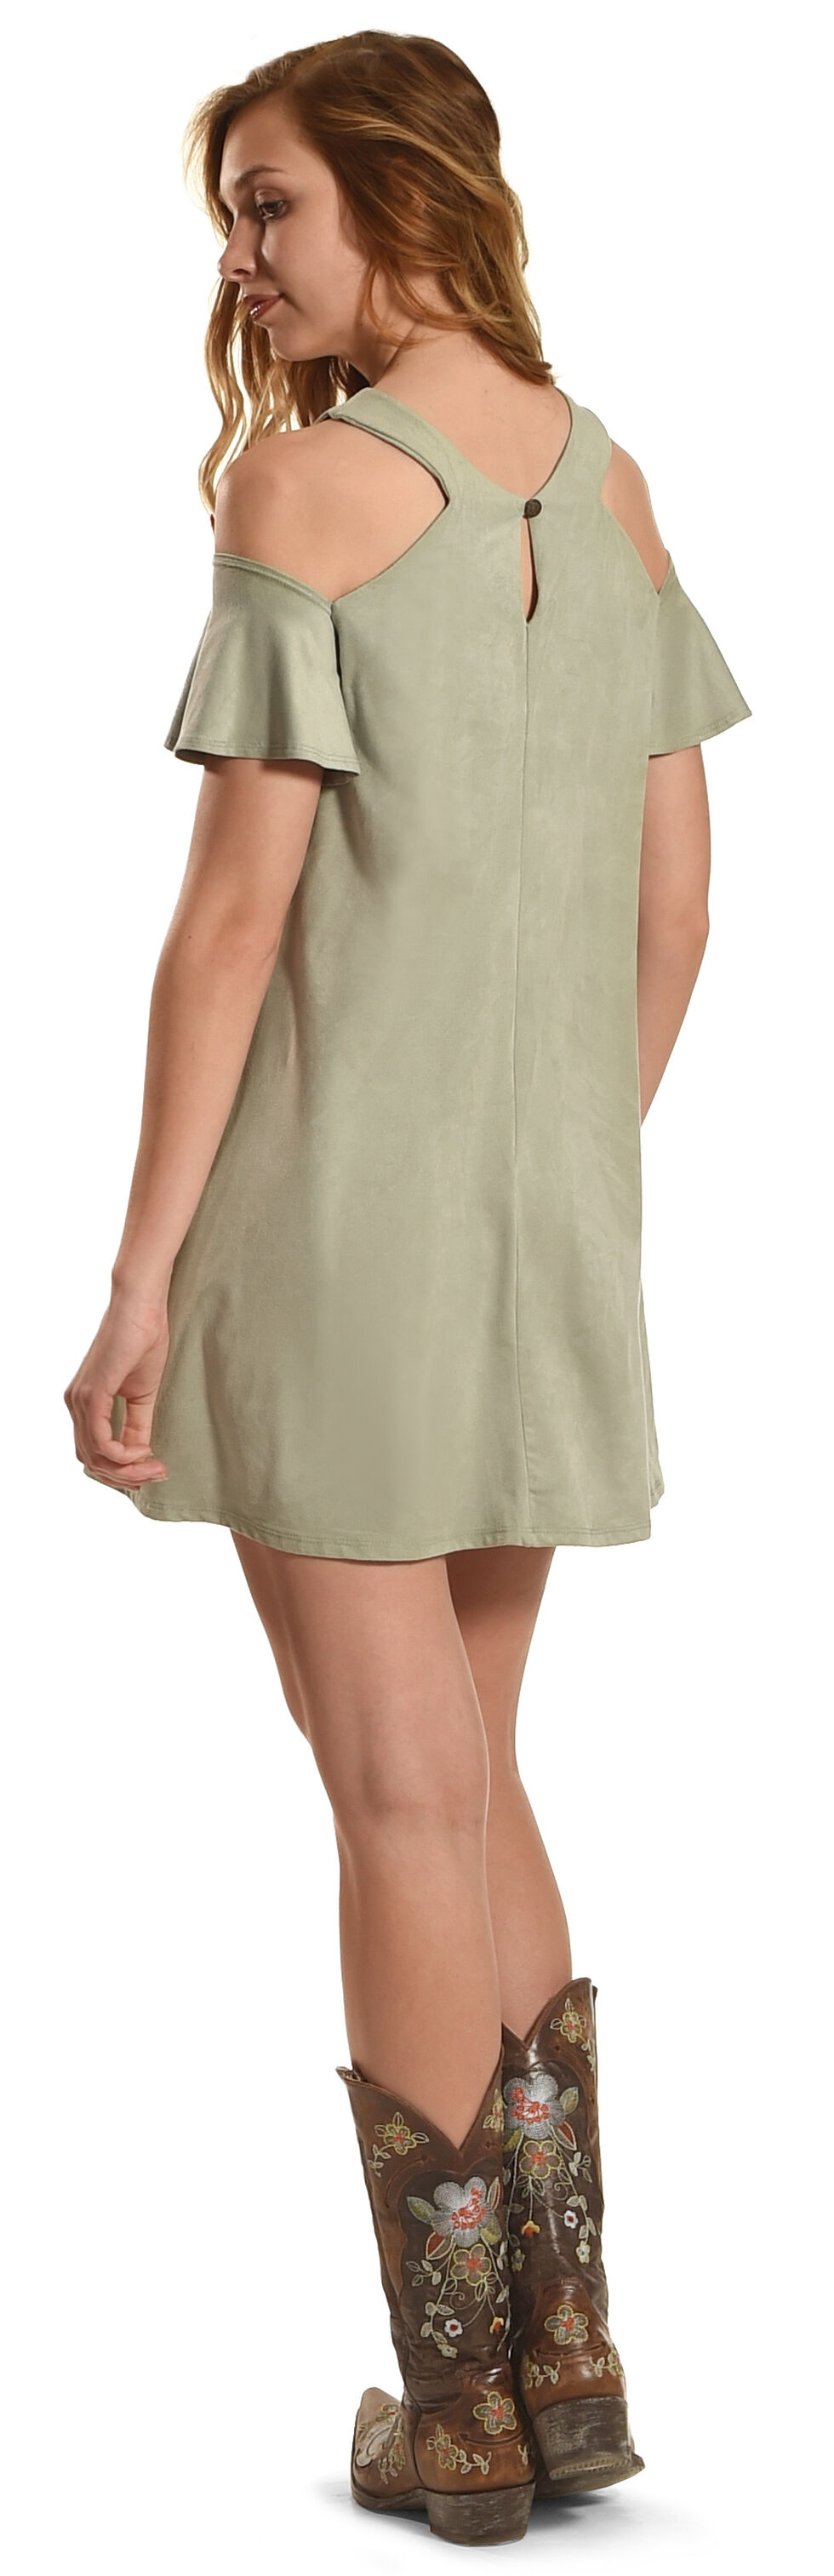 Jody of California Women's Sage Cold Shoulder Micro Suede Dress , Sage, hi-res